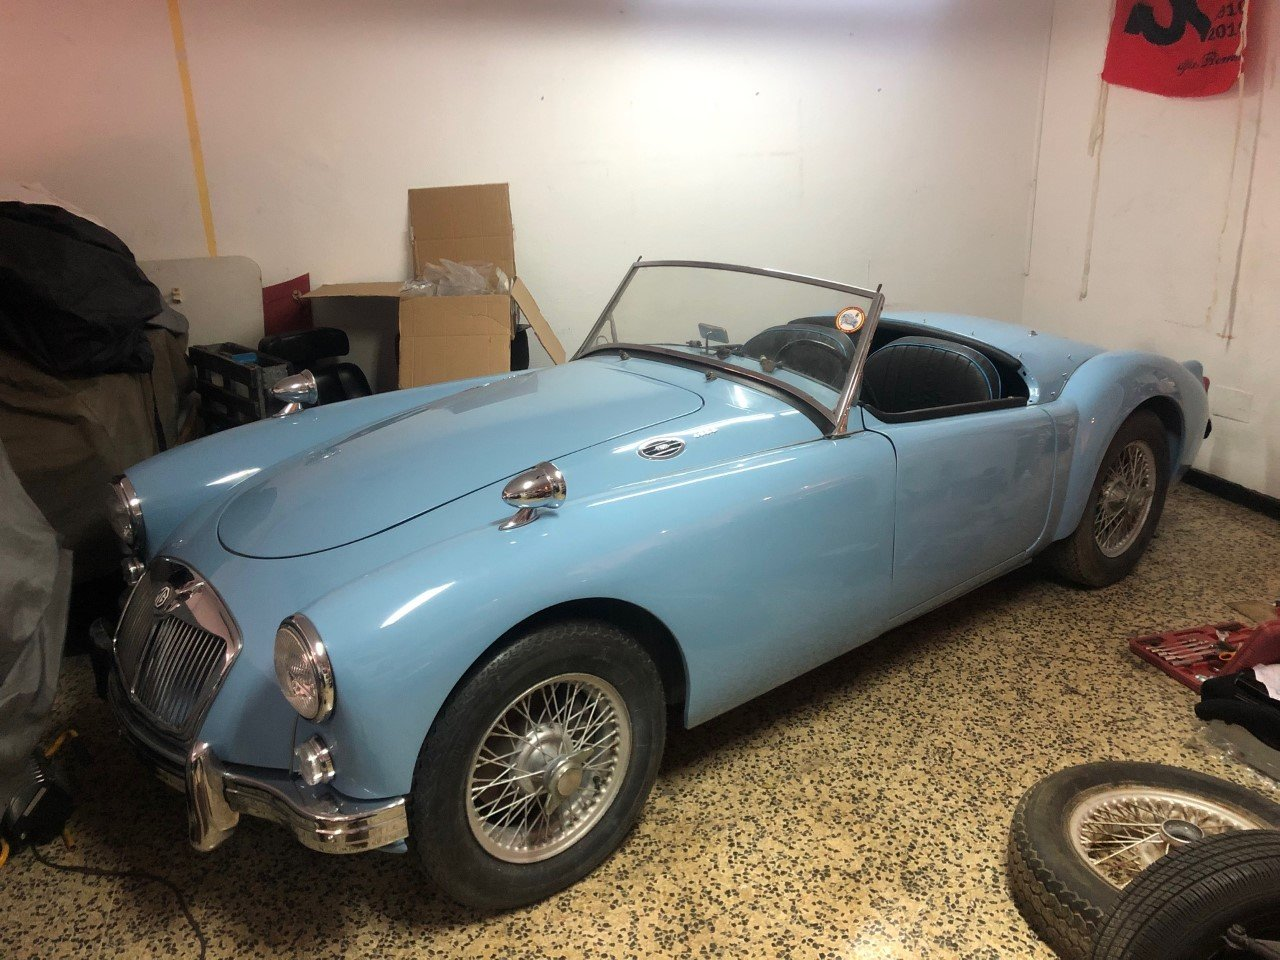 MG A 1600 Roadster 1960 For Sale (picture 1 of 6)